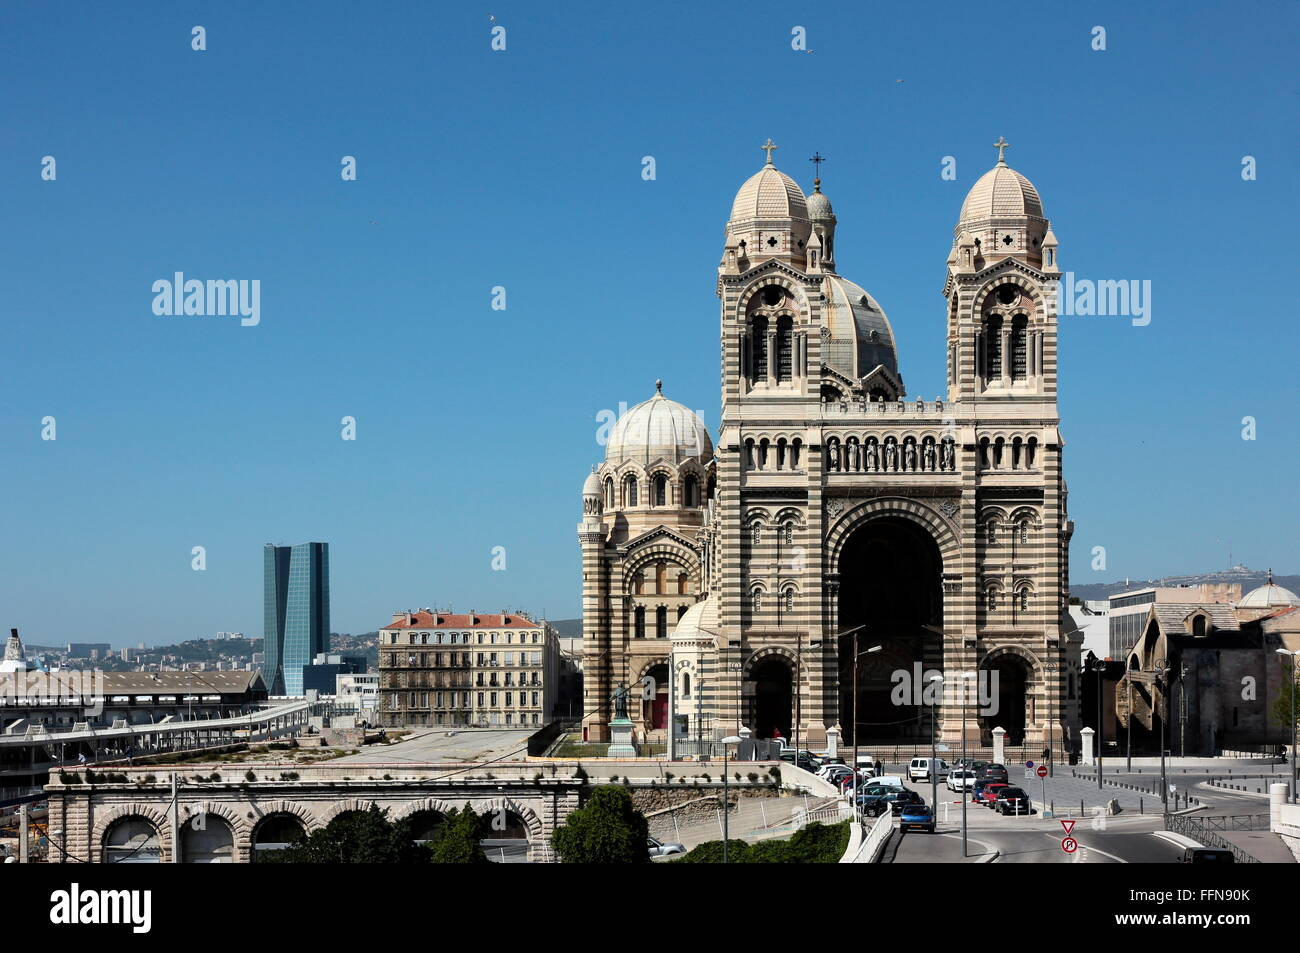 geography / travel, France, Marseille, CGA CGM building by Zaha Hadid and Cathedrale de la Major, exterior view, - Stock Image